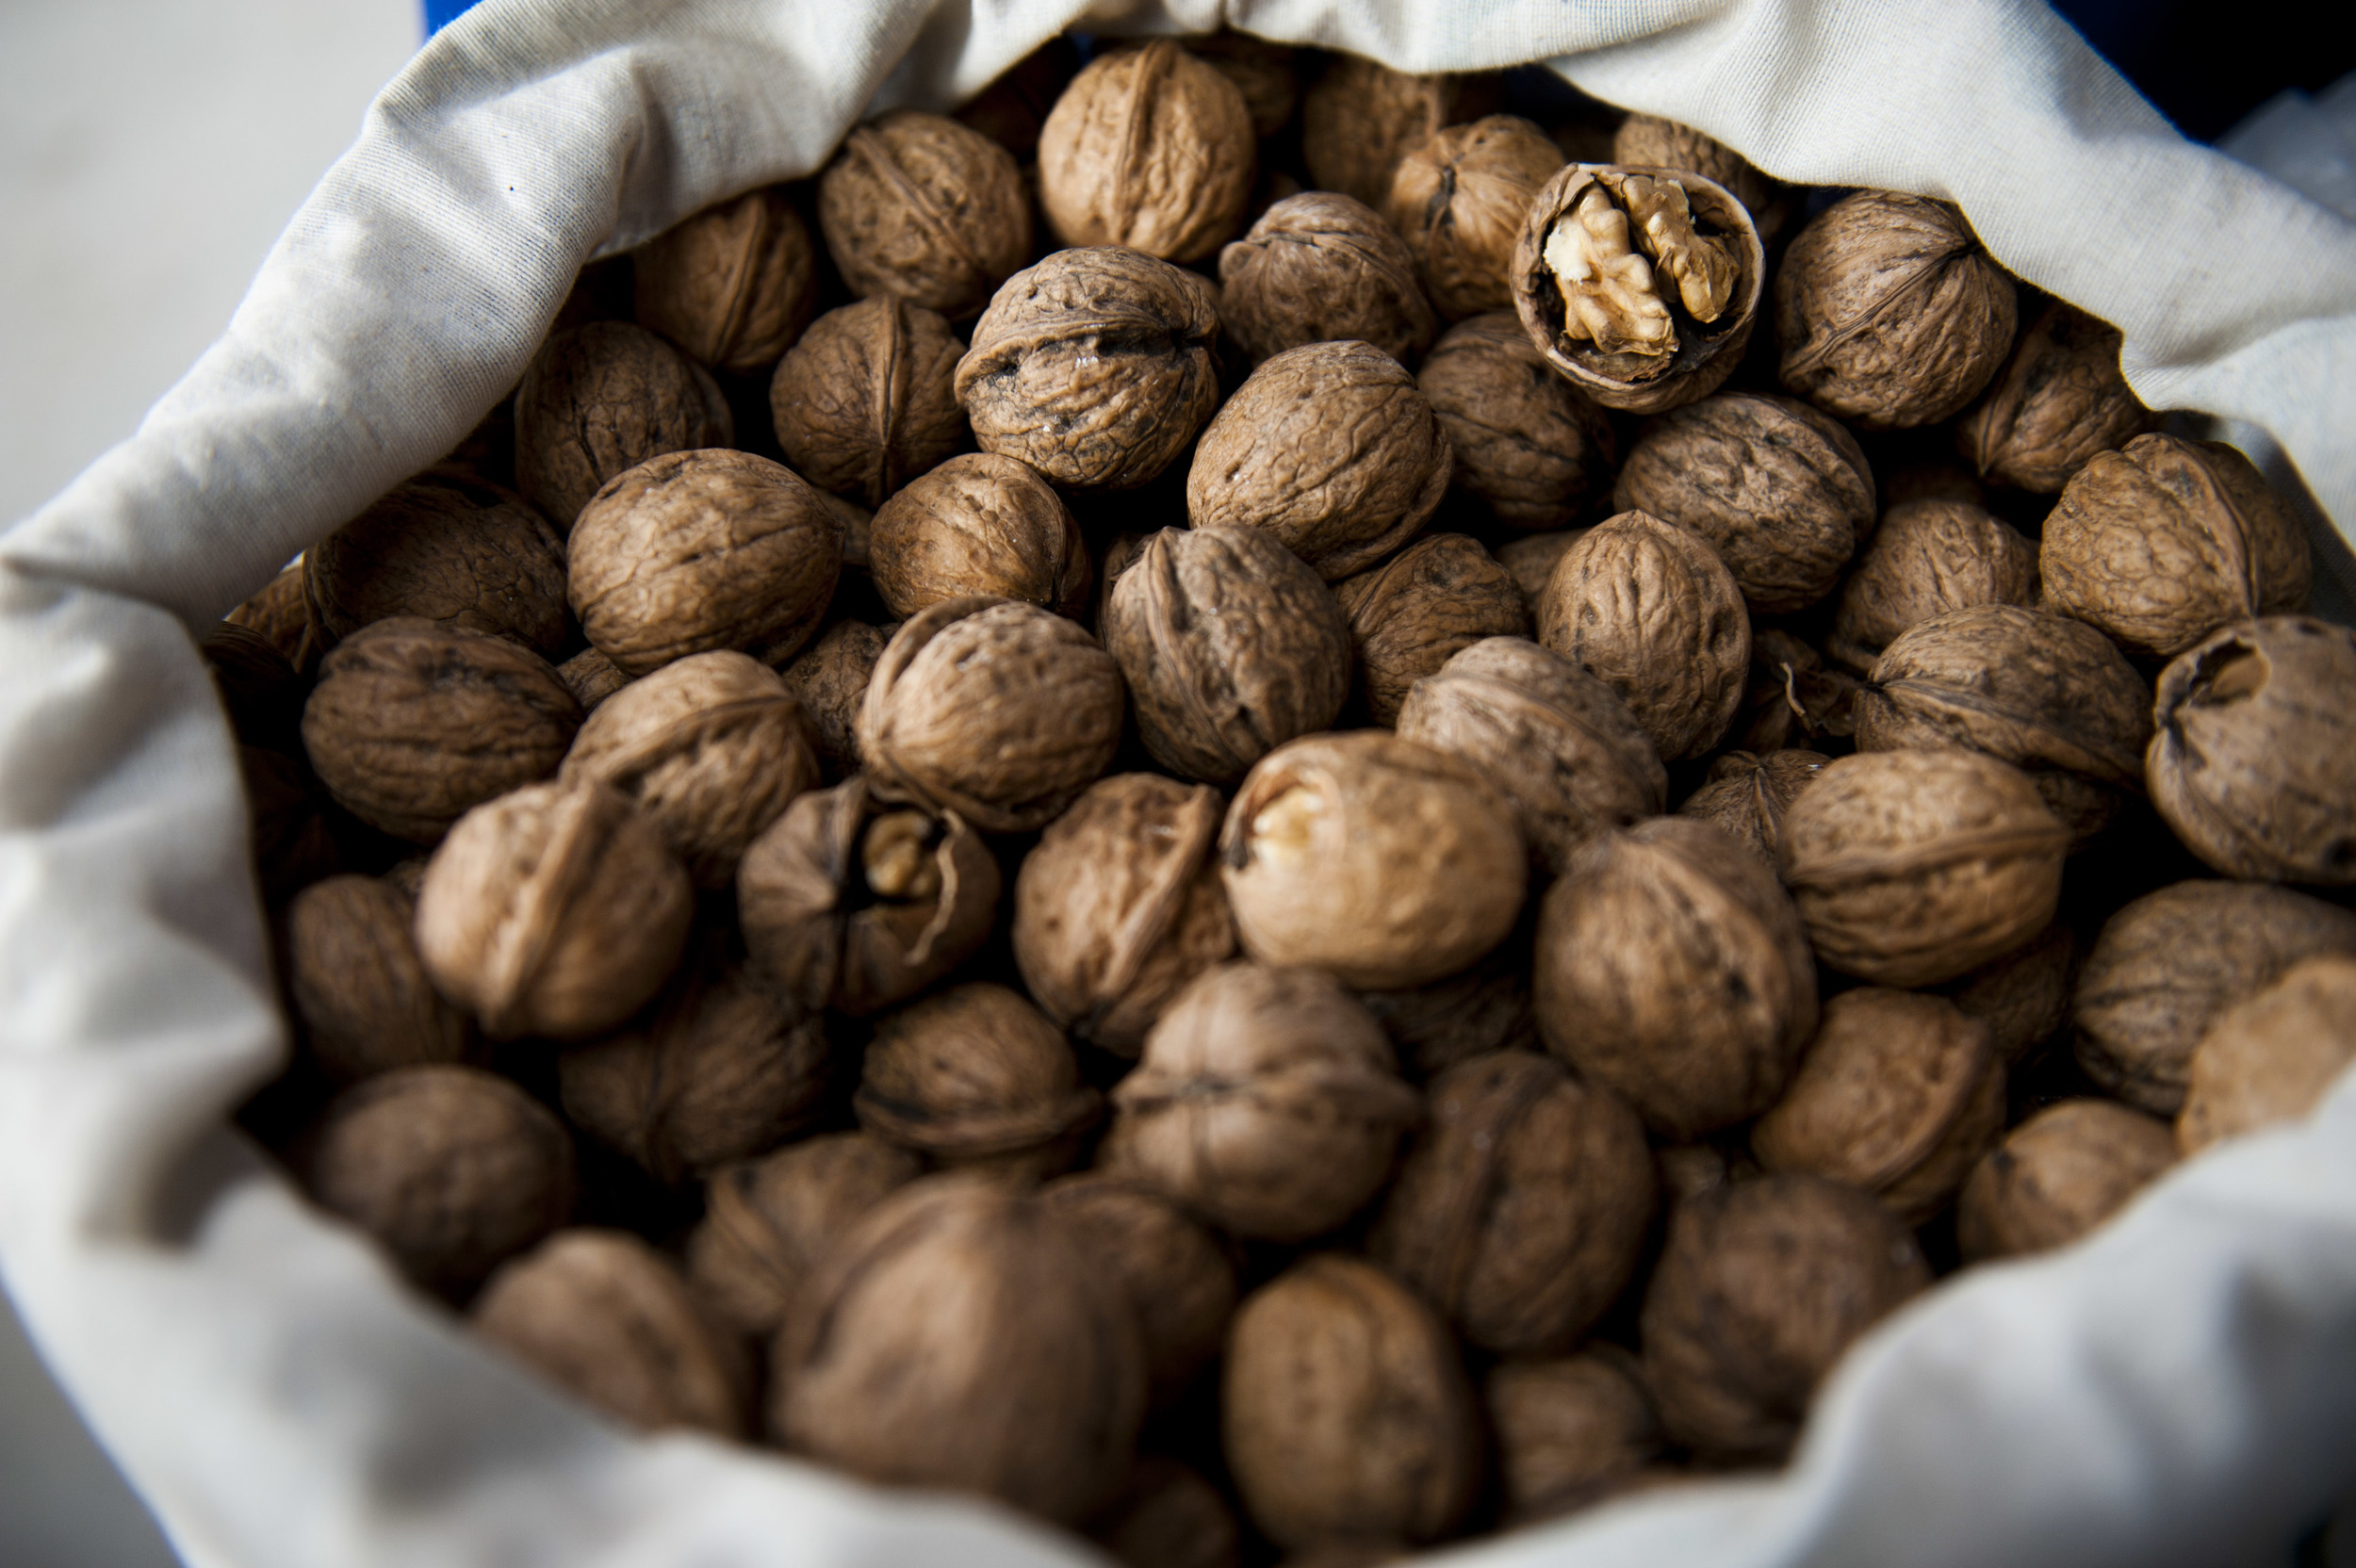 A picture of a cloth bag filled with walnuts in their shells